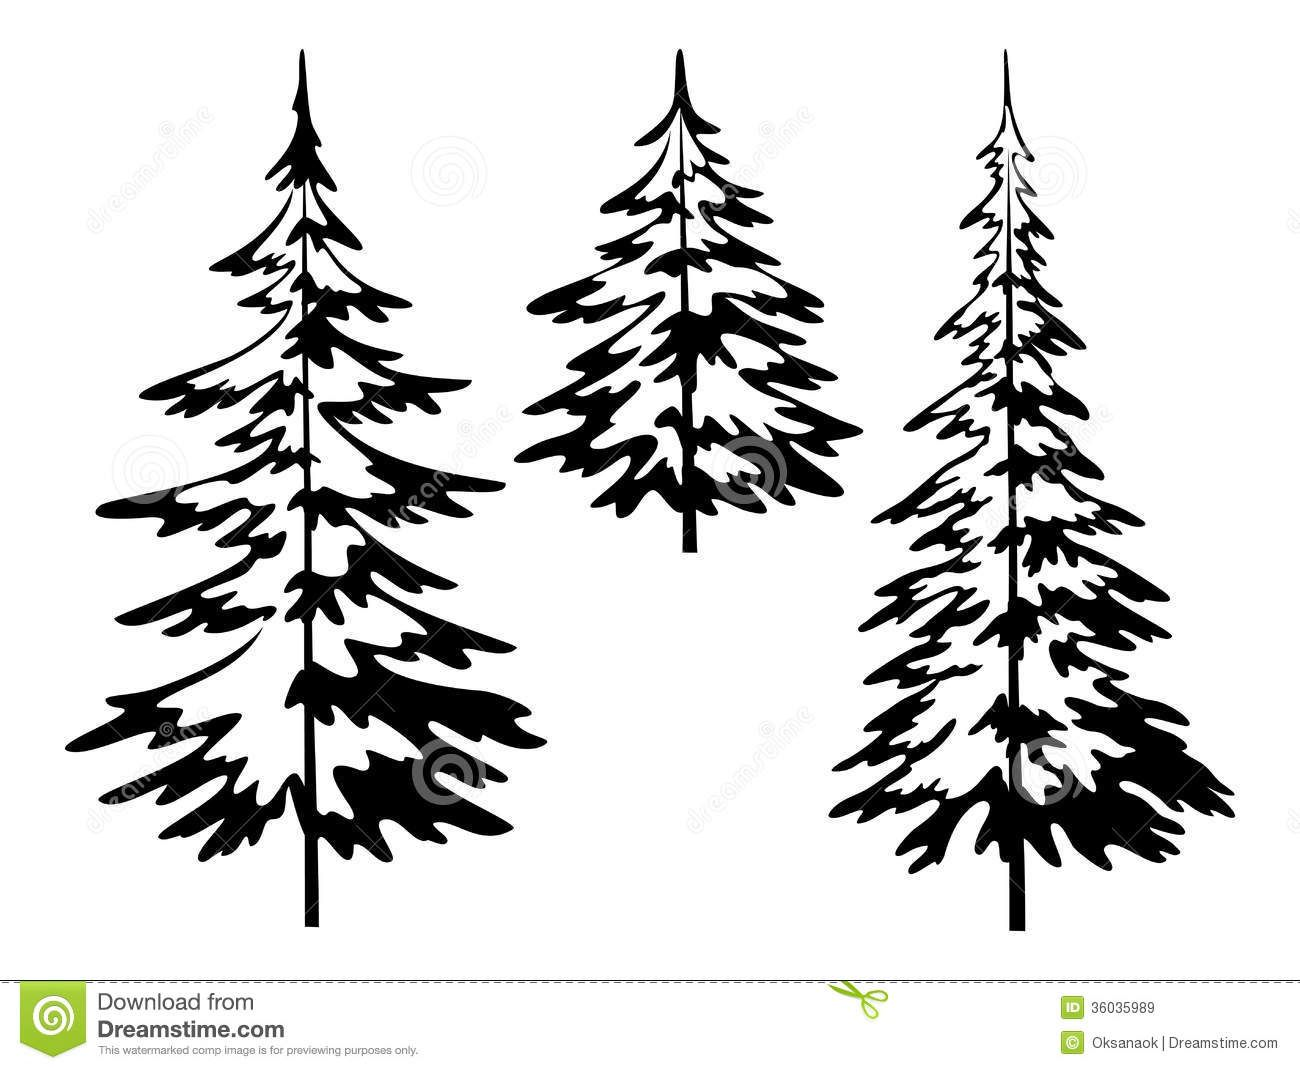 Christmas tree drawing black and white - Find This Pin And More On A Xmas Tree